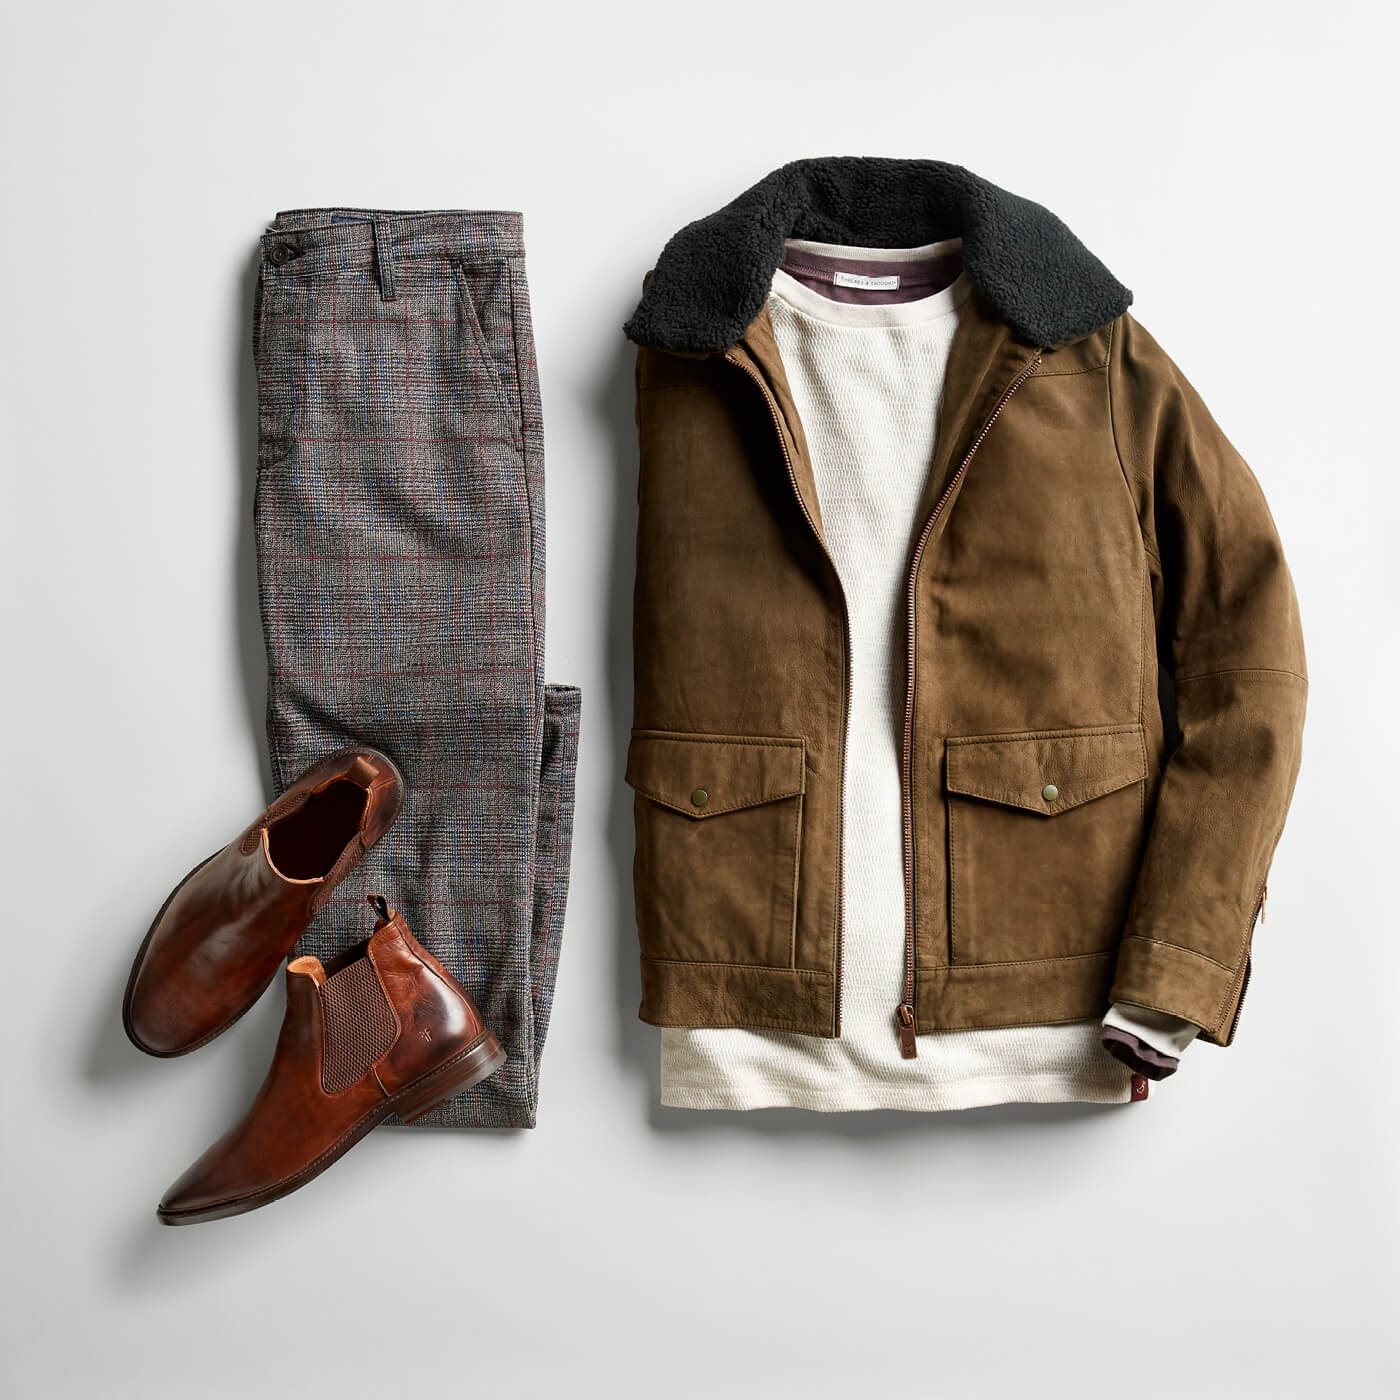 8f06a1b340d8 6 Outfits Any Guy Can Wear on a Date